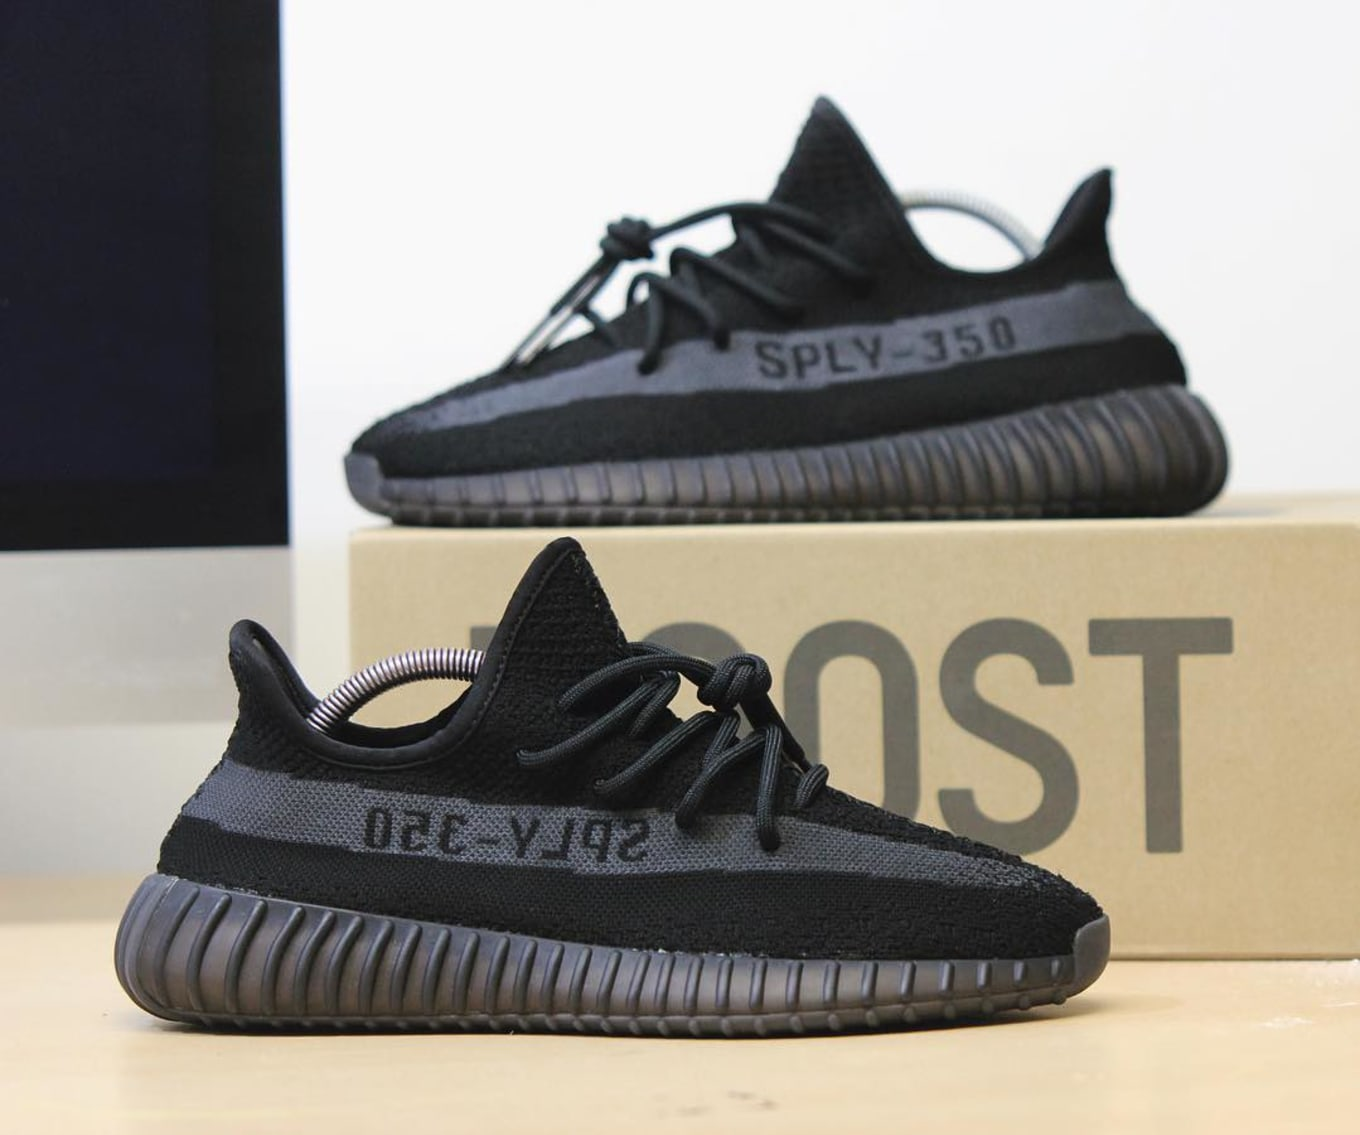 cc1a3feec9f The Best Adidas Yeezy 350 Boost V2 Customs